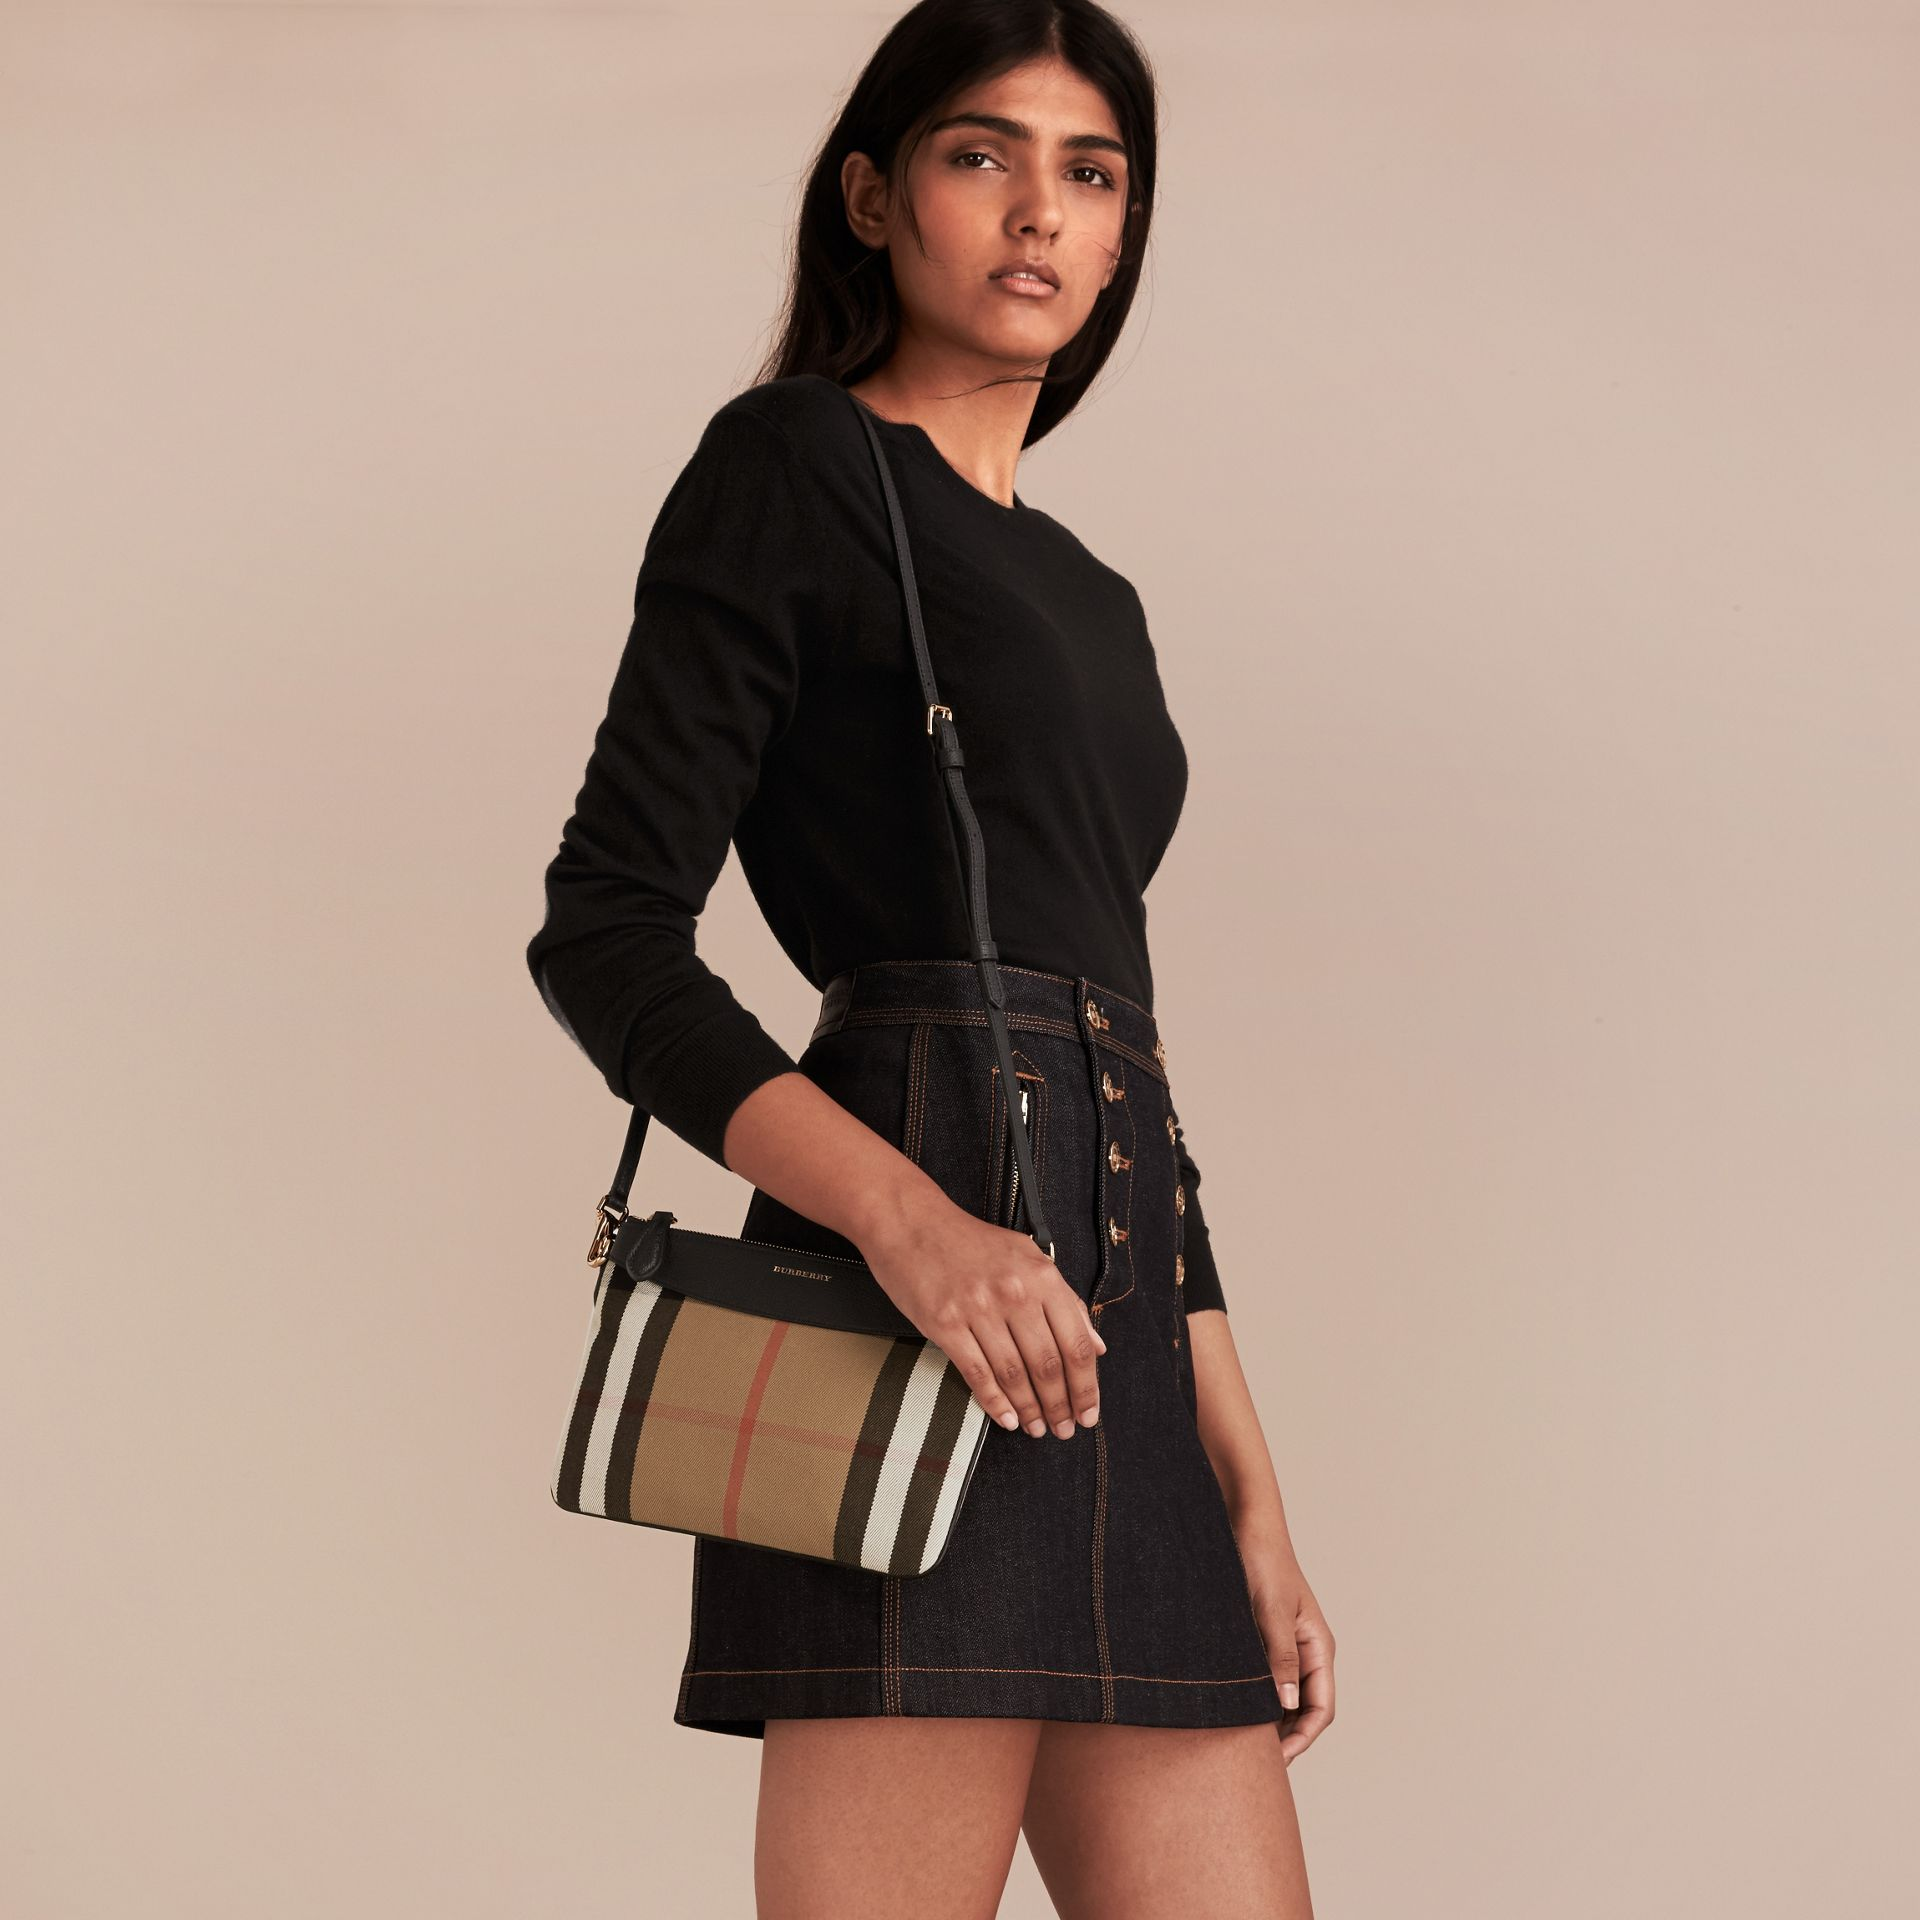 House Check and Leather Clutch Bag in Black - Women | Burberry - gallery image 3